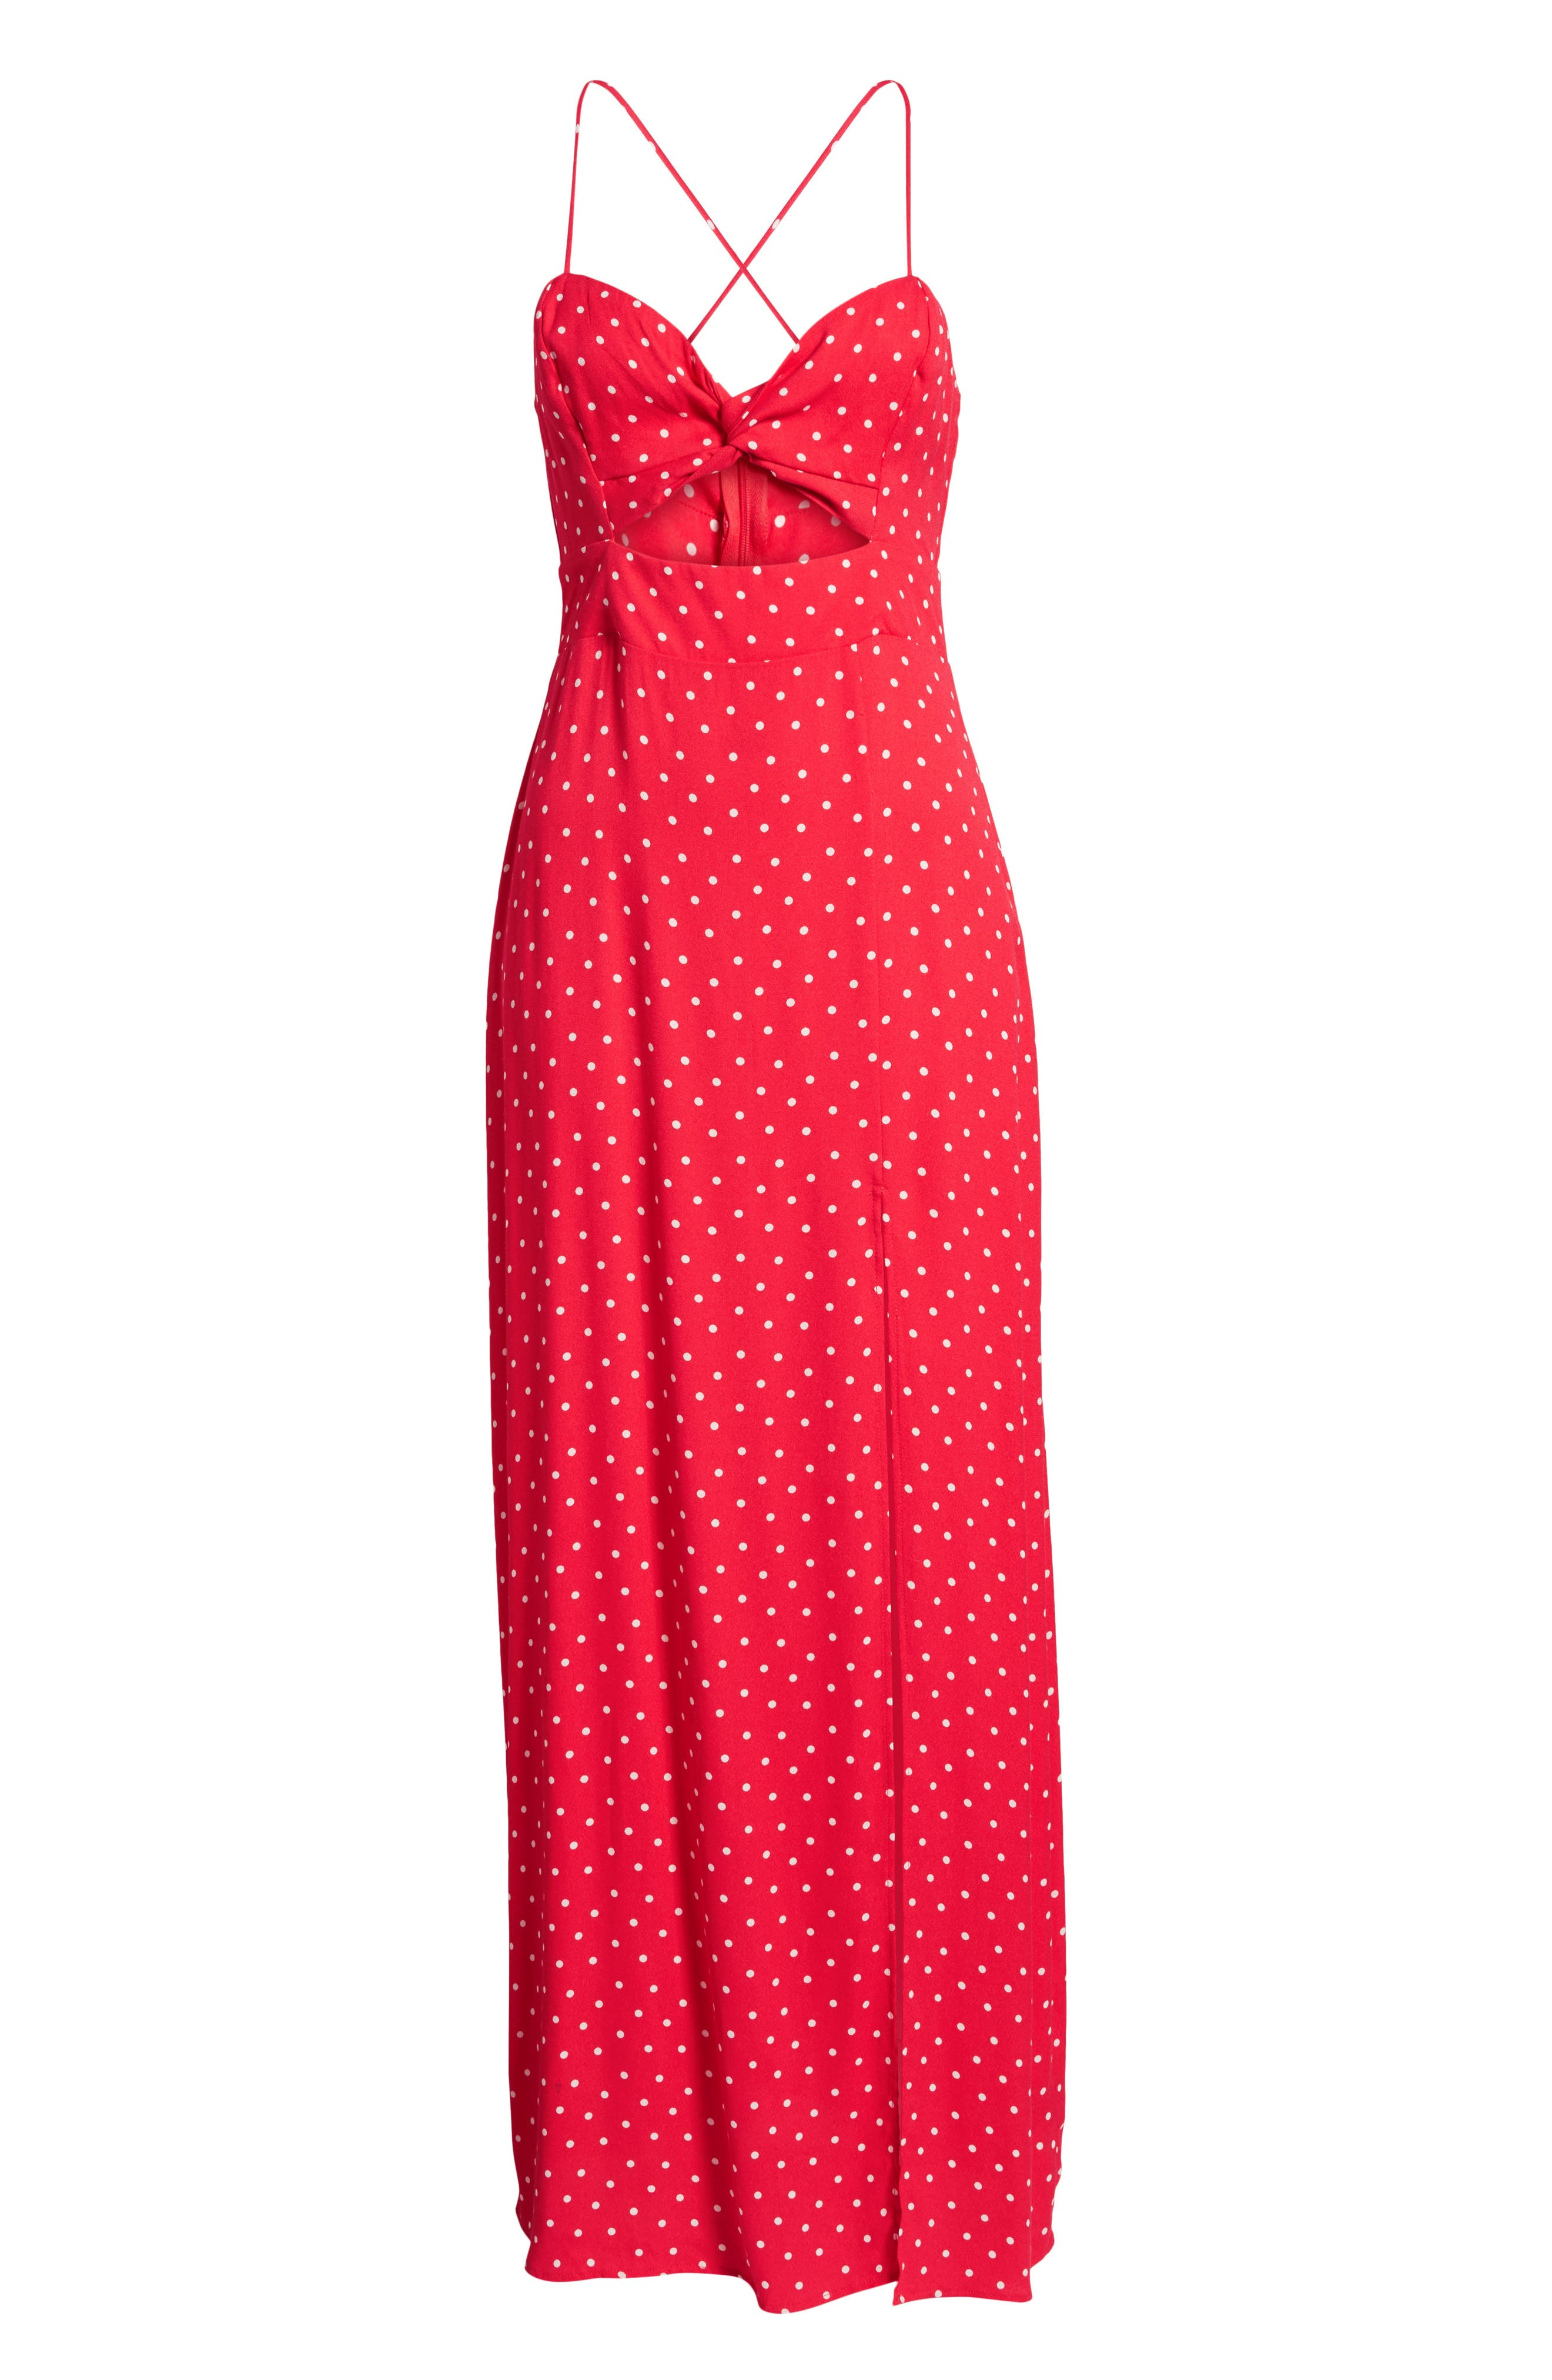 Marie Twisted Knot Front Maxi Dress,                             Alternate thumbnail 8, color,                             RED POLKA DOT